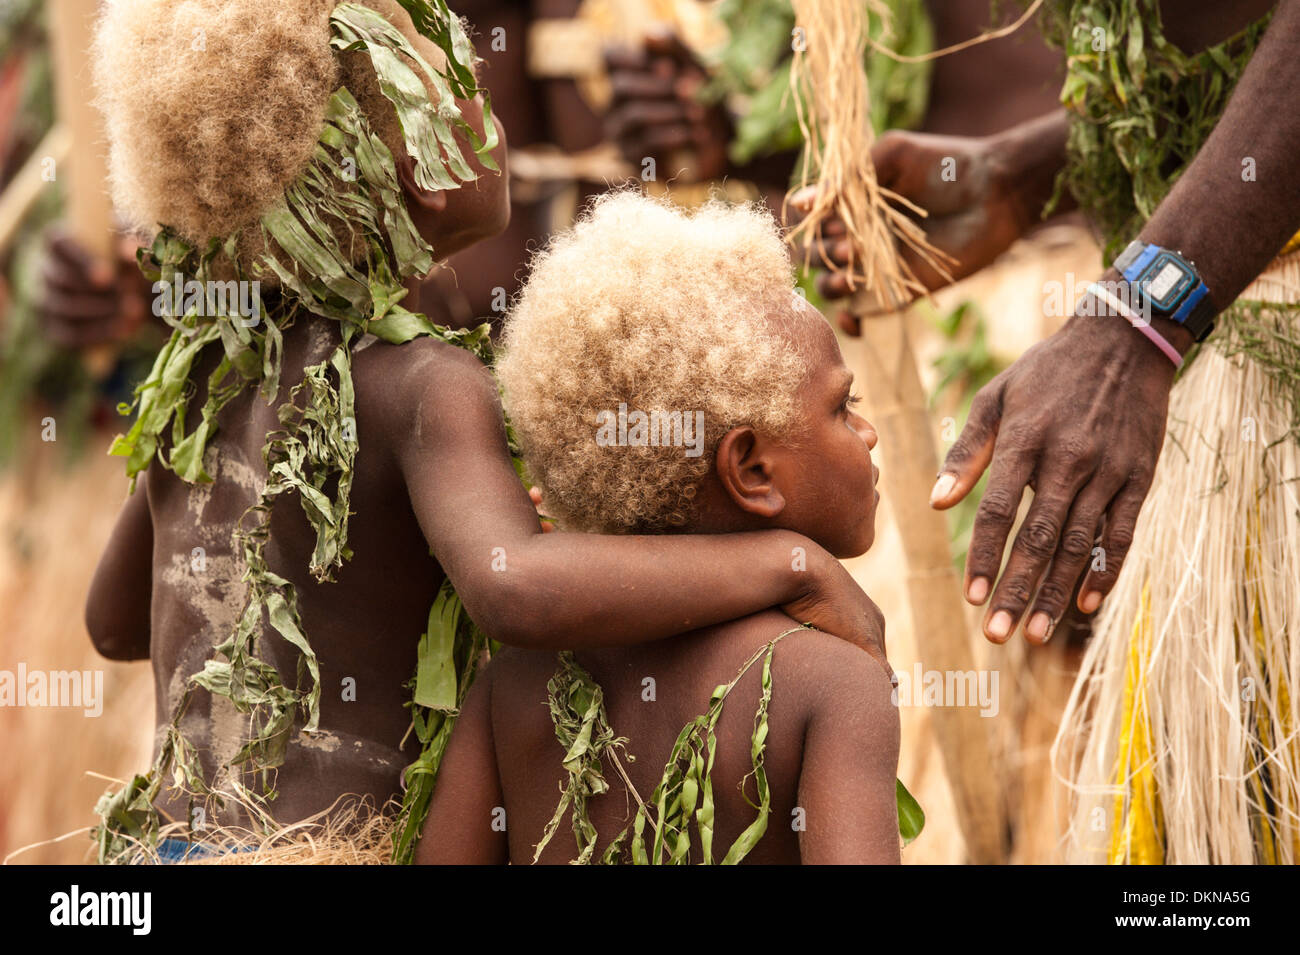 Children amongst performers from Tanna taking part in Fest' Sawagoro, a celebration of kastom, traditional culture in Vanuatu - Stock Image